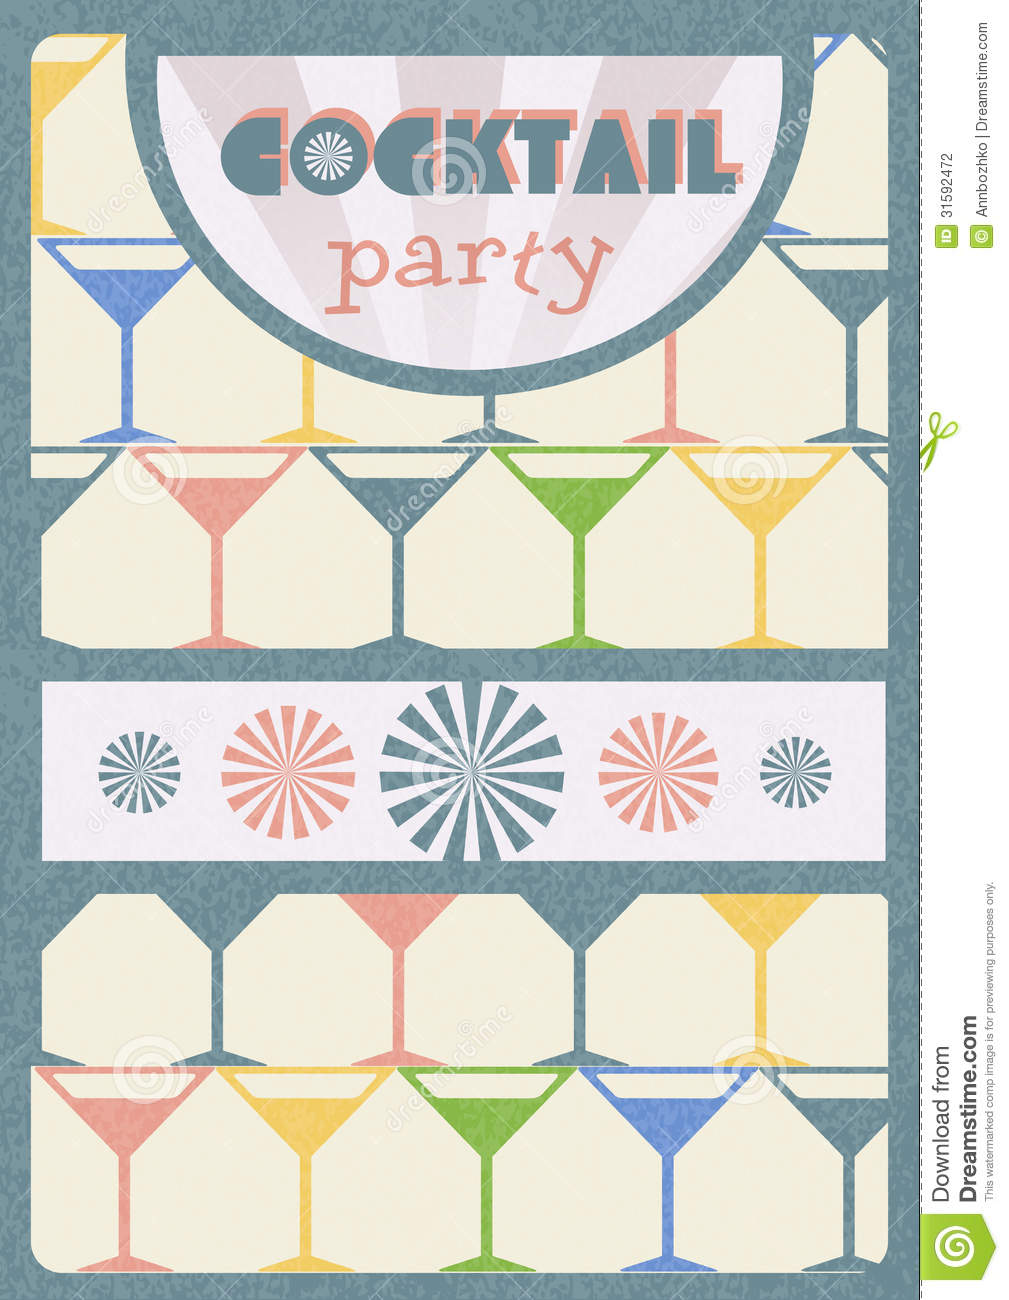 Retro Poster. Cocktail Party Stock Photography - Image ...